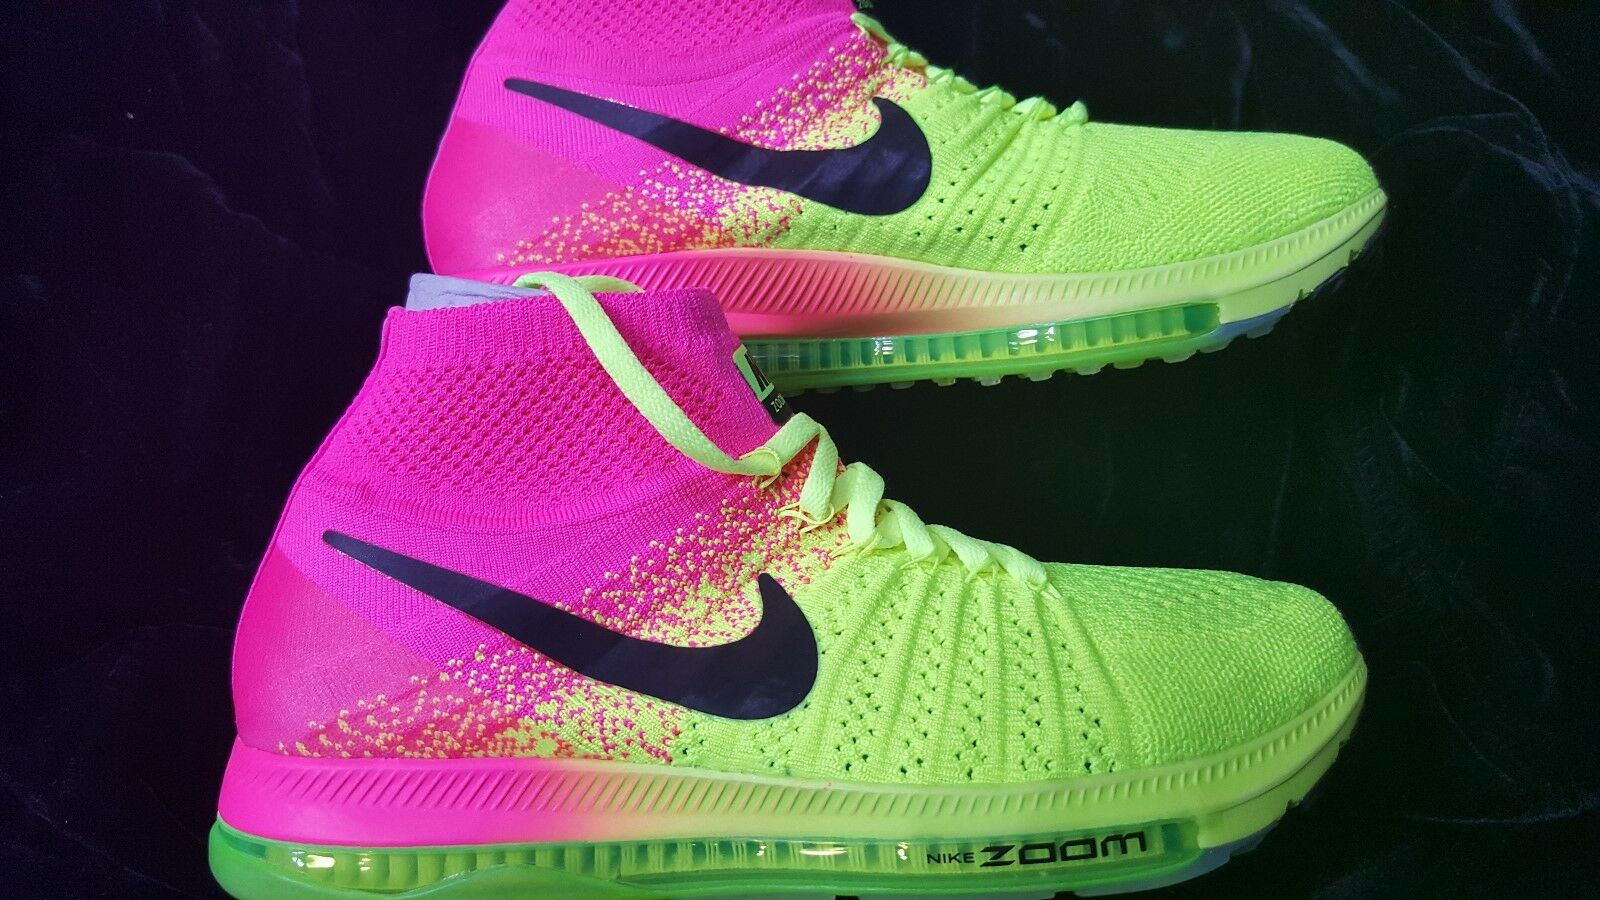 MENS ALL NIKE ZOOM ALL MENS OUT FLYKNIT OC PINK VOLT SZ 10.5 61b3f9